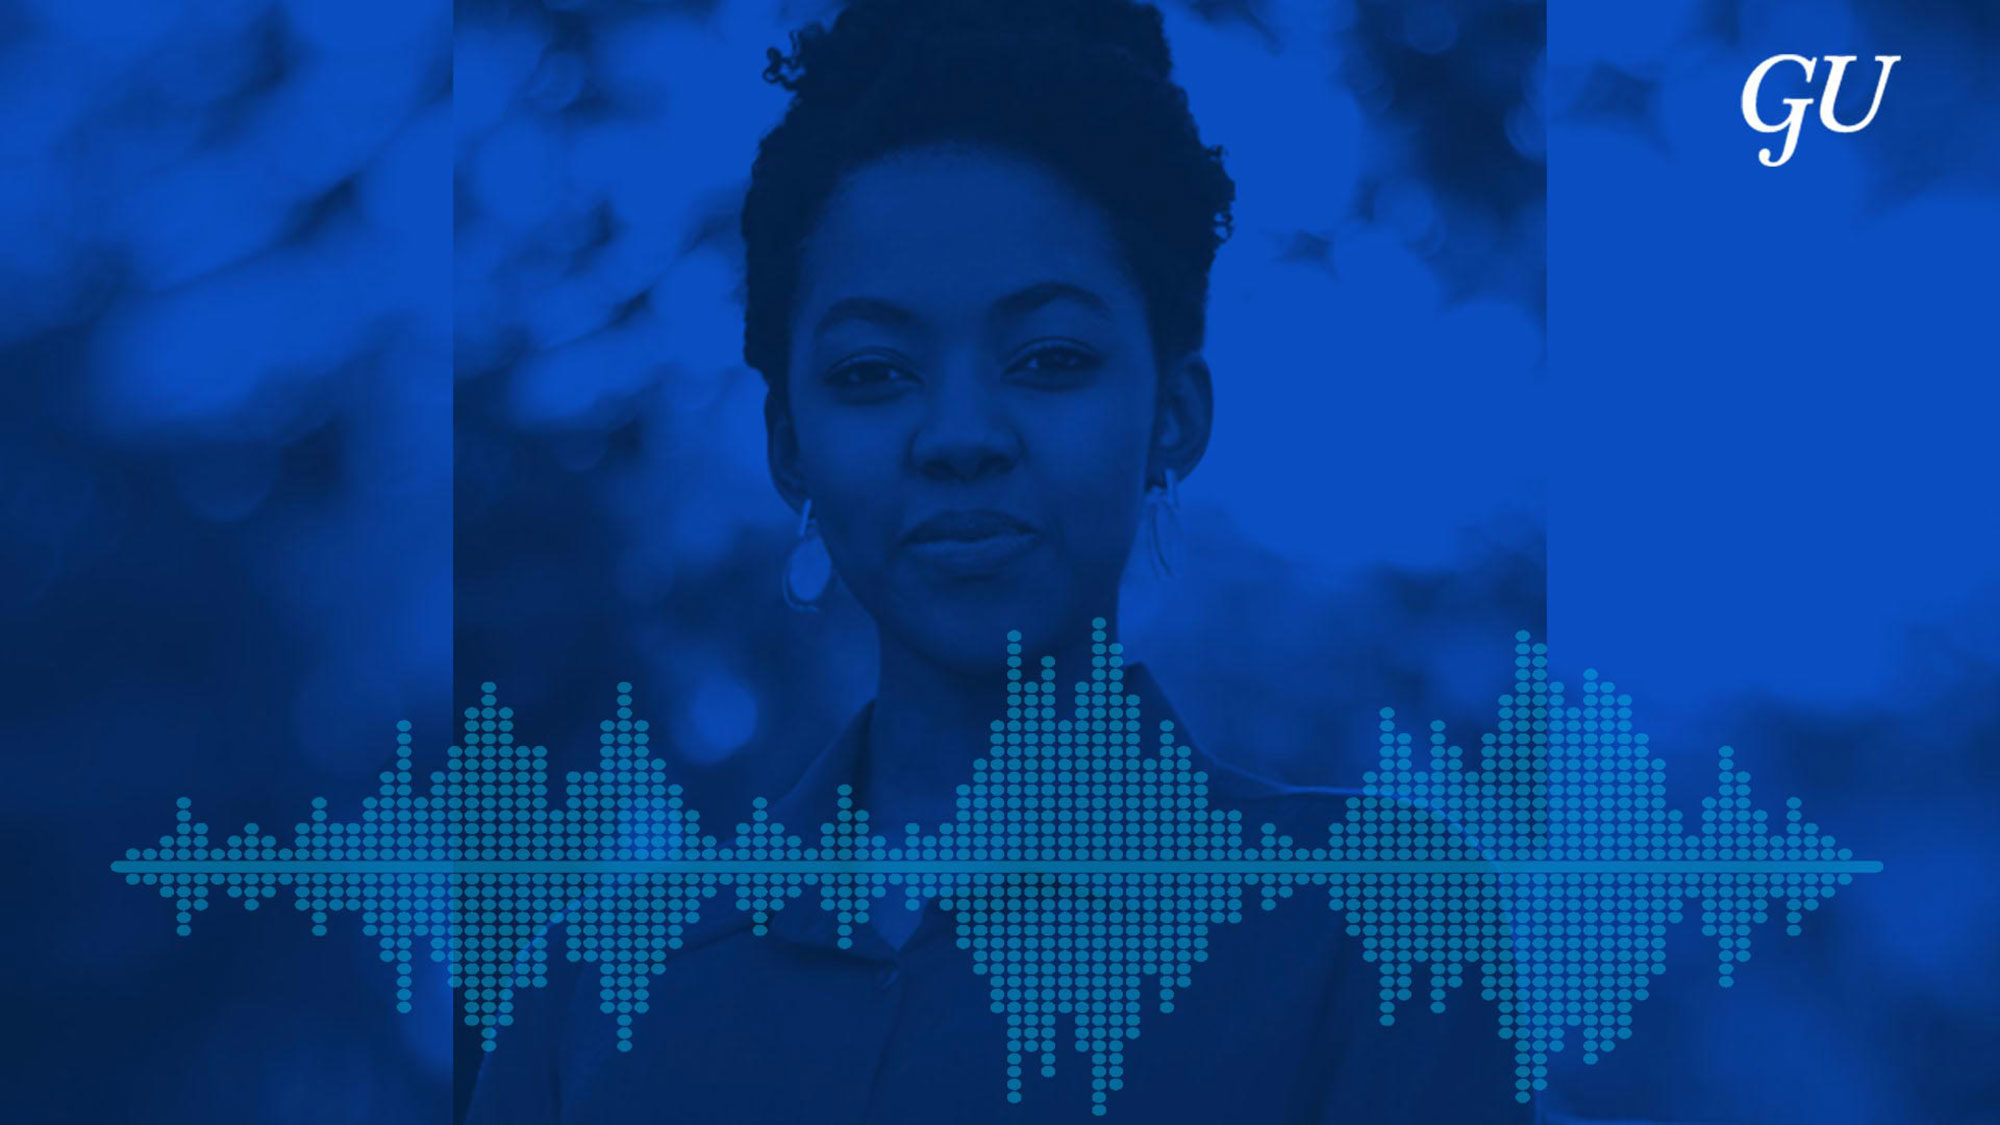 Graphic of Maya James with a blue overlay.